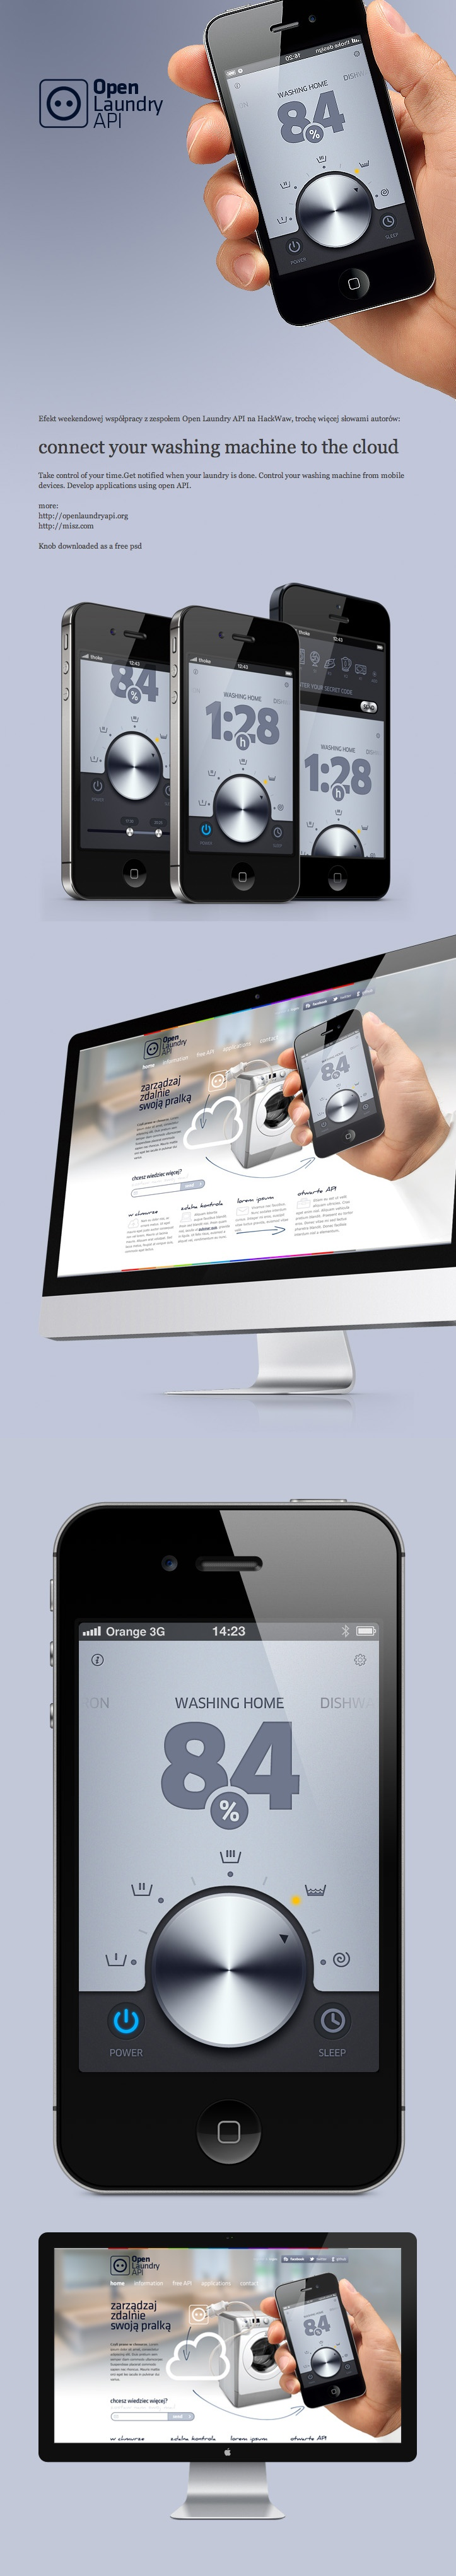 simple mac remote *** connect your washing machine to the cloud    Take control of your time.    Get notified when your laundry is done. Control your washing machine from mobile devices. Develop applications using open API. ***  by Michal Galubinski, via Behance